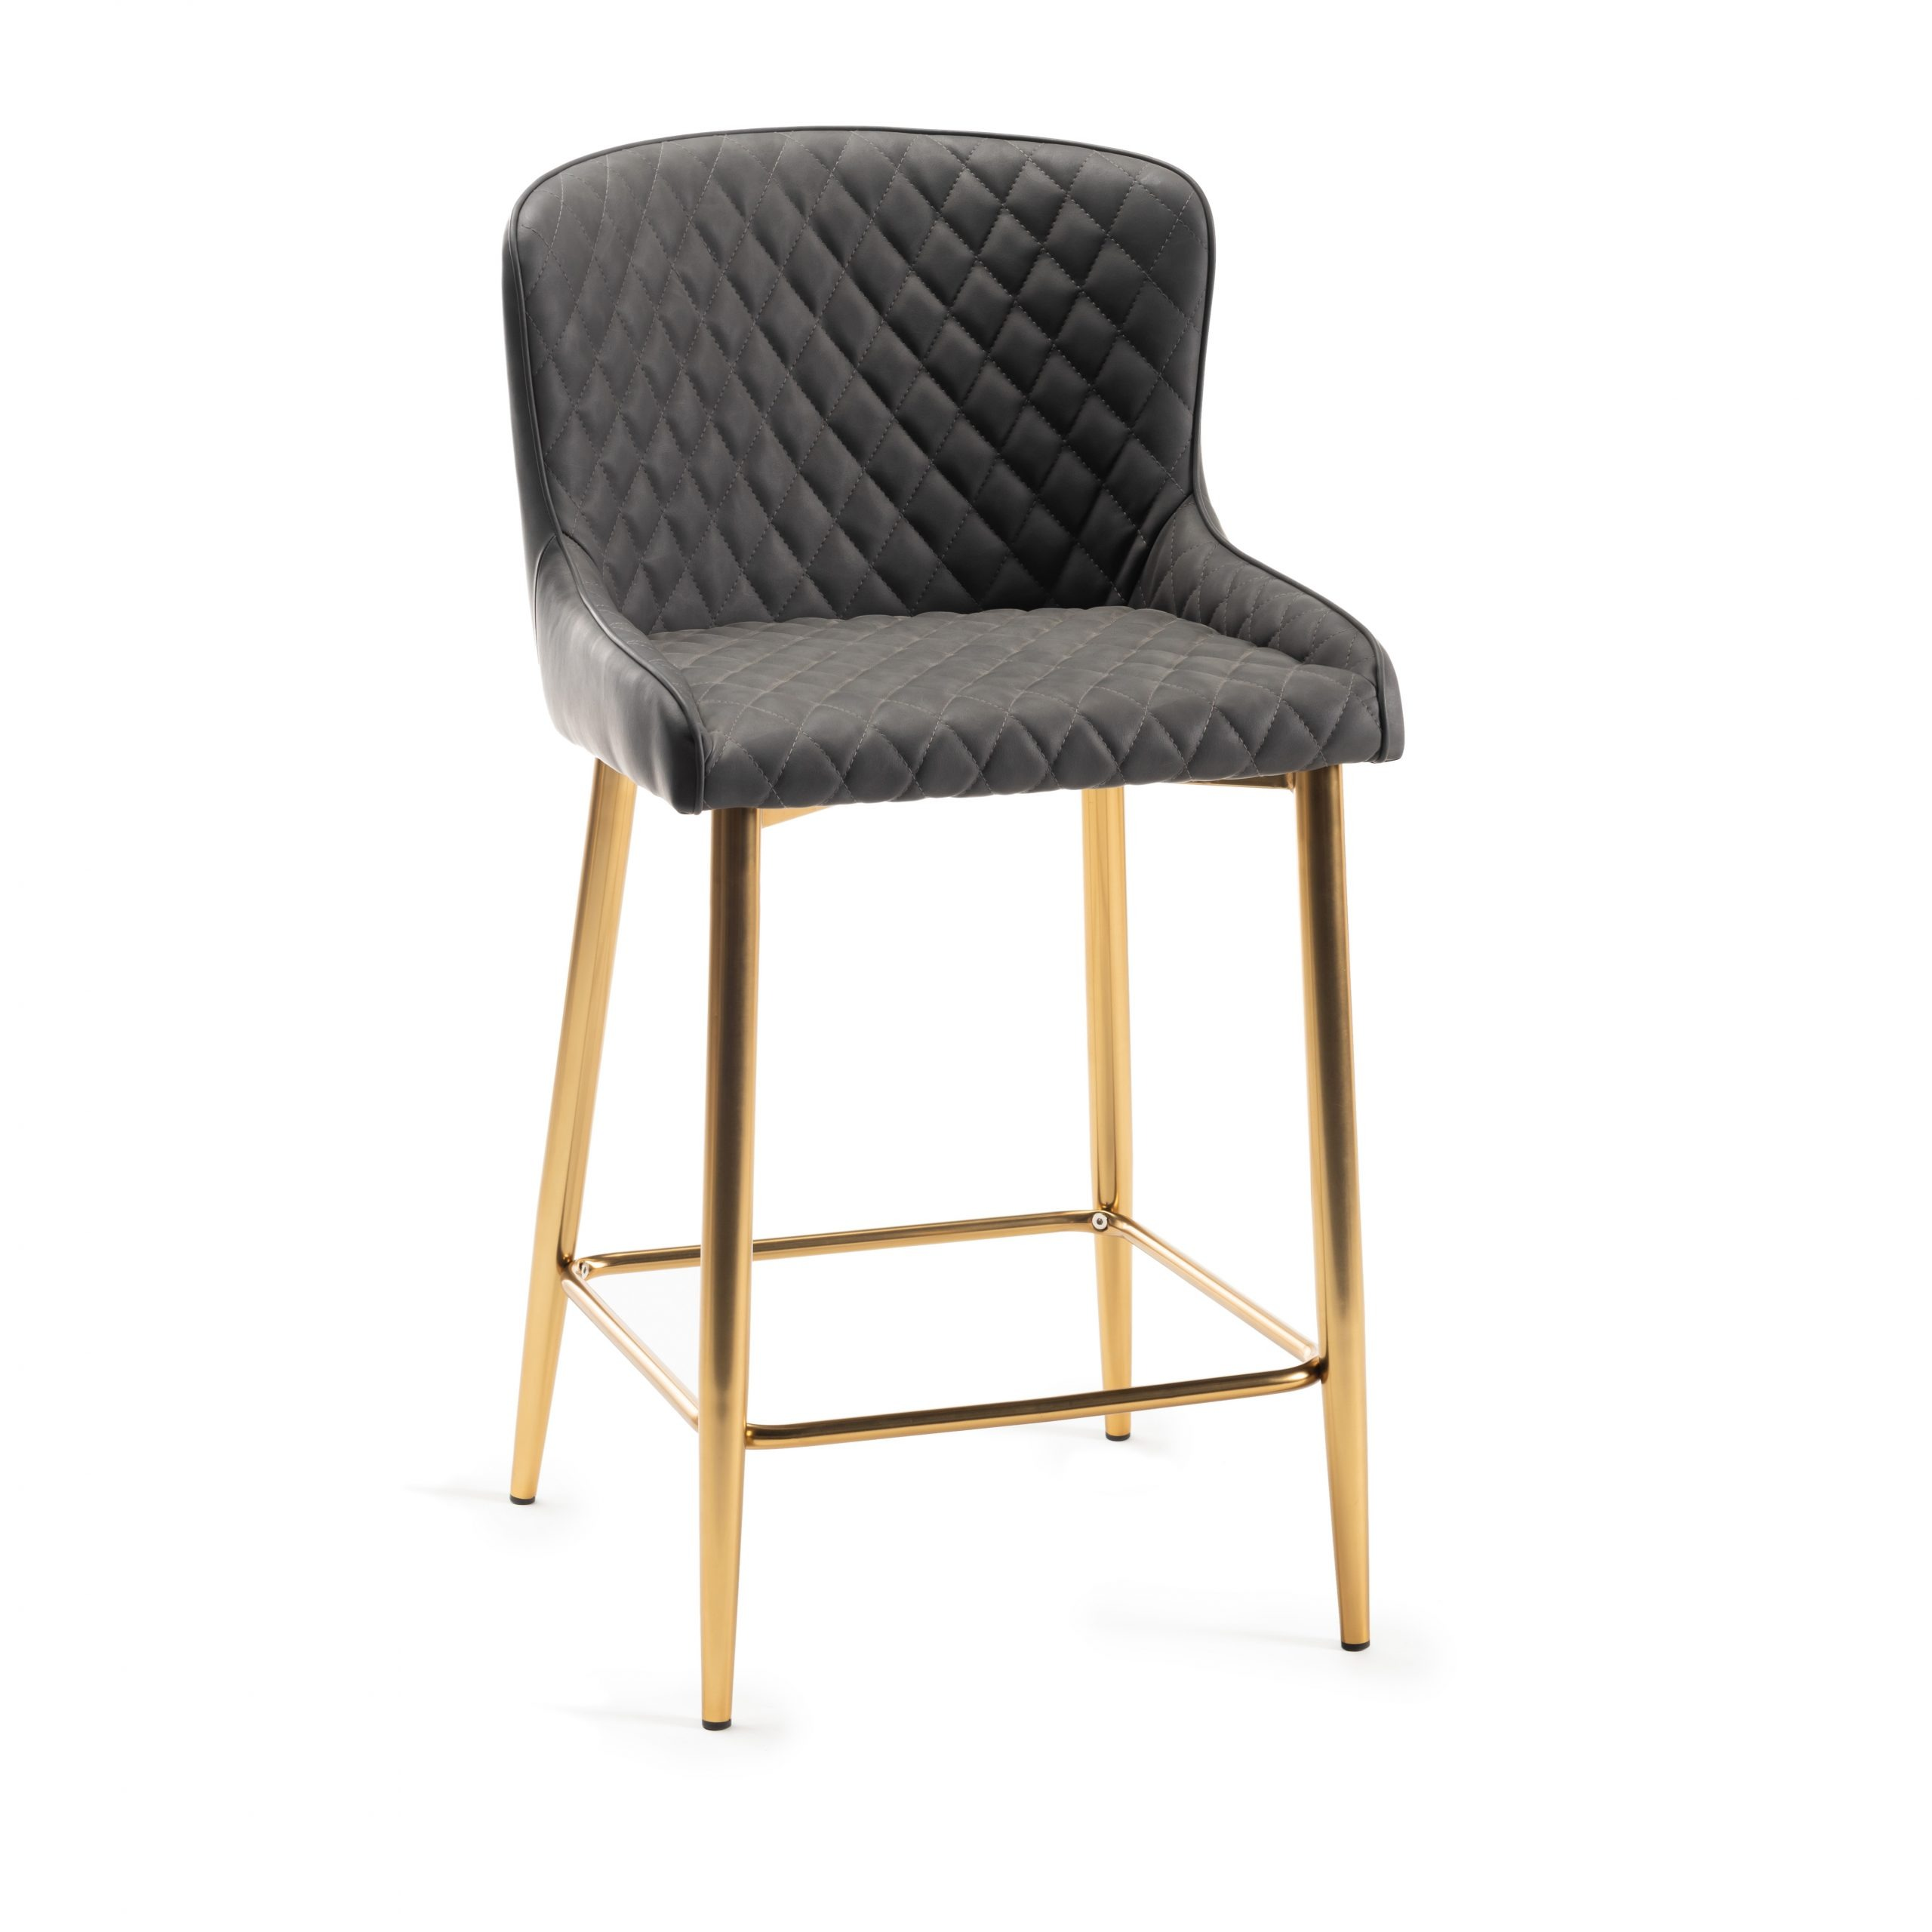 Sophia Grey leather and gold bar stool